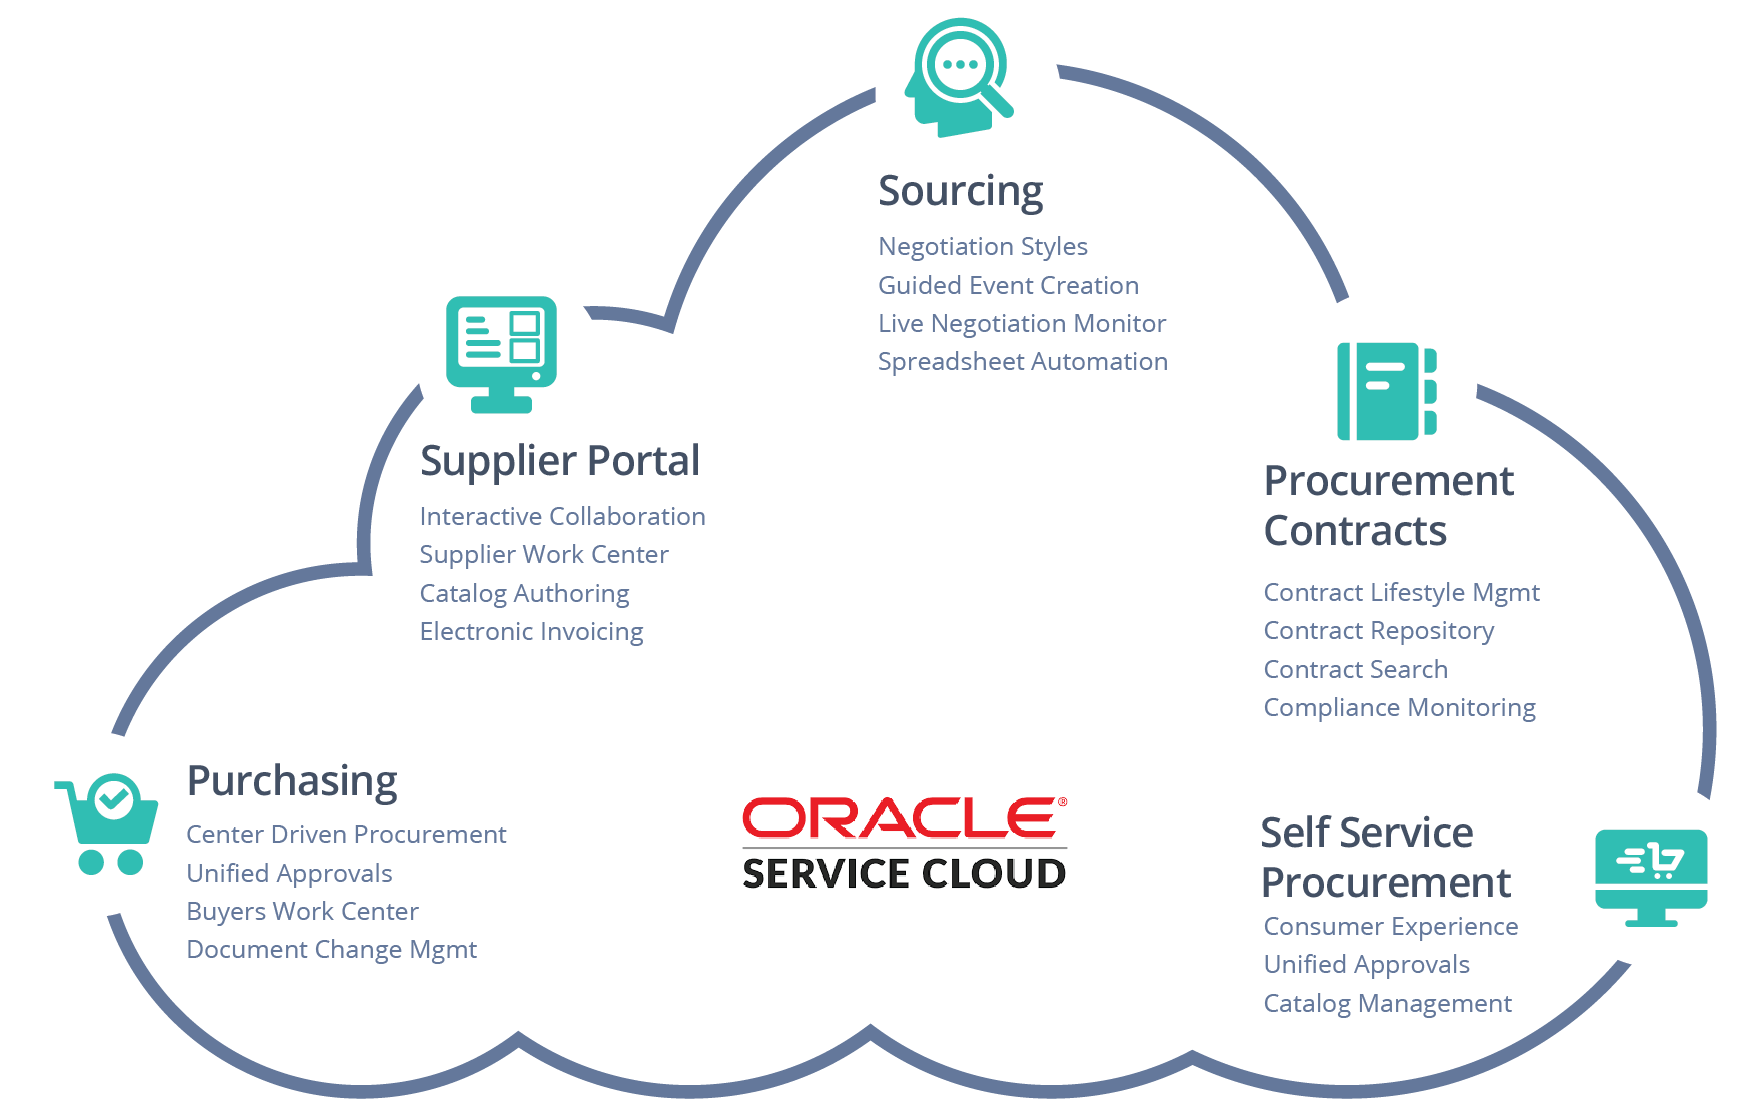 Oracle Procurement Cloud Services | Jadeglobal Cloud Services